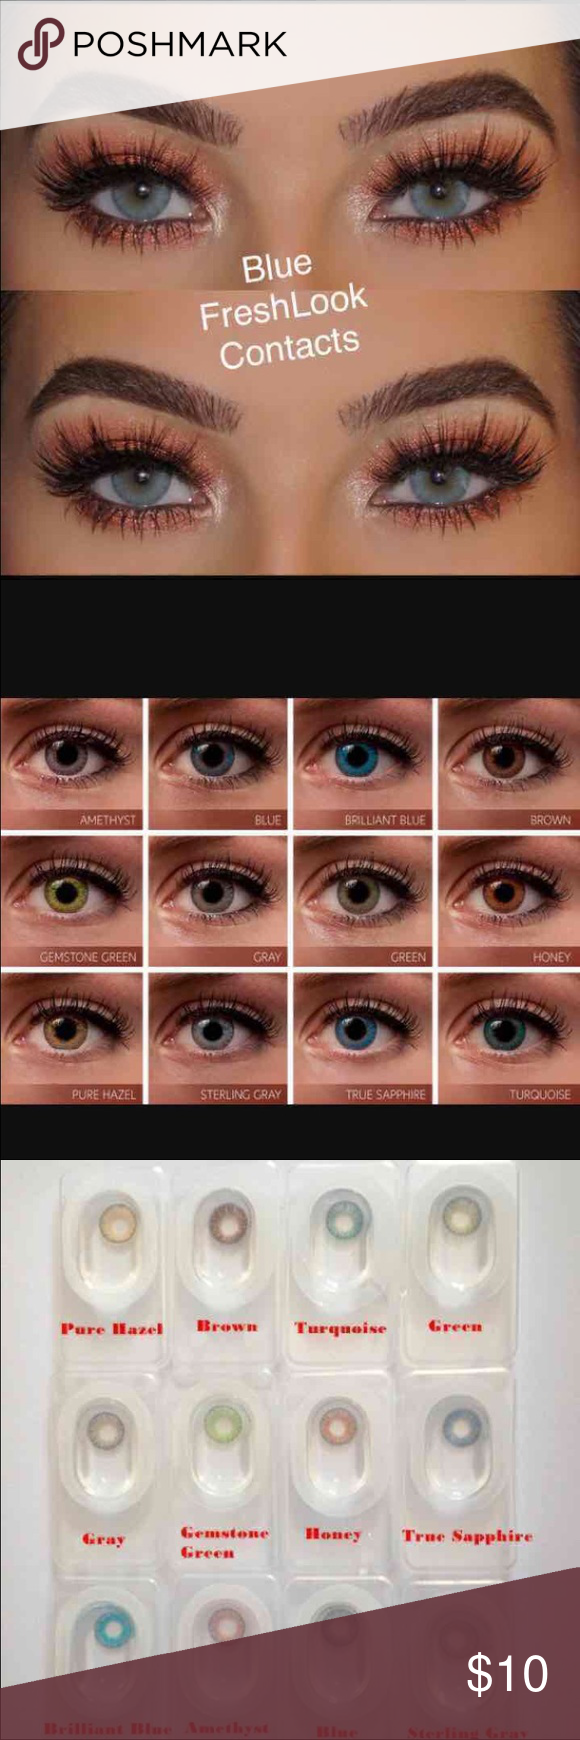 Blue Freshlook Contacts Available Colors All Colors Please Message Me What Color You Would Like One Pai Natural Contact Lenses Freshlook Contacts Gift Makeup